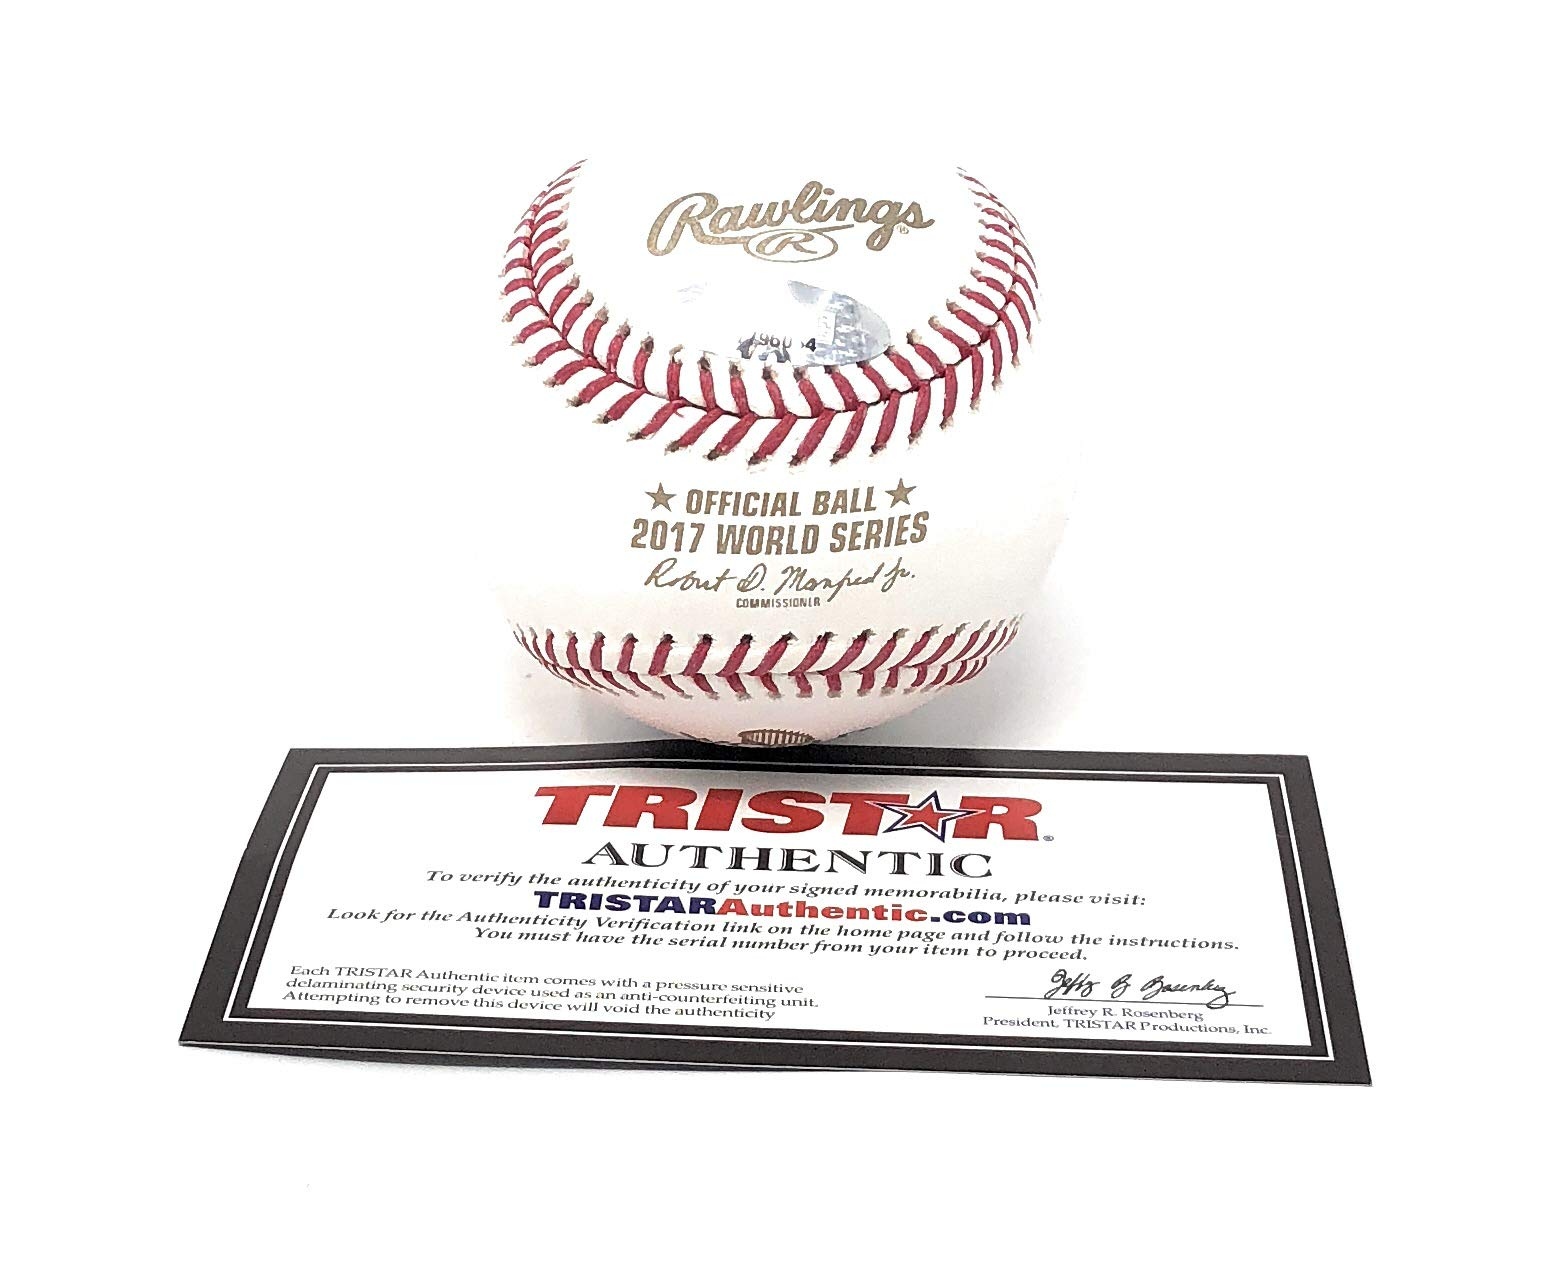 Josh Reddick Houston Astros Signed Autograph Official MLB World Series Baseball Tristar Authentic Certified